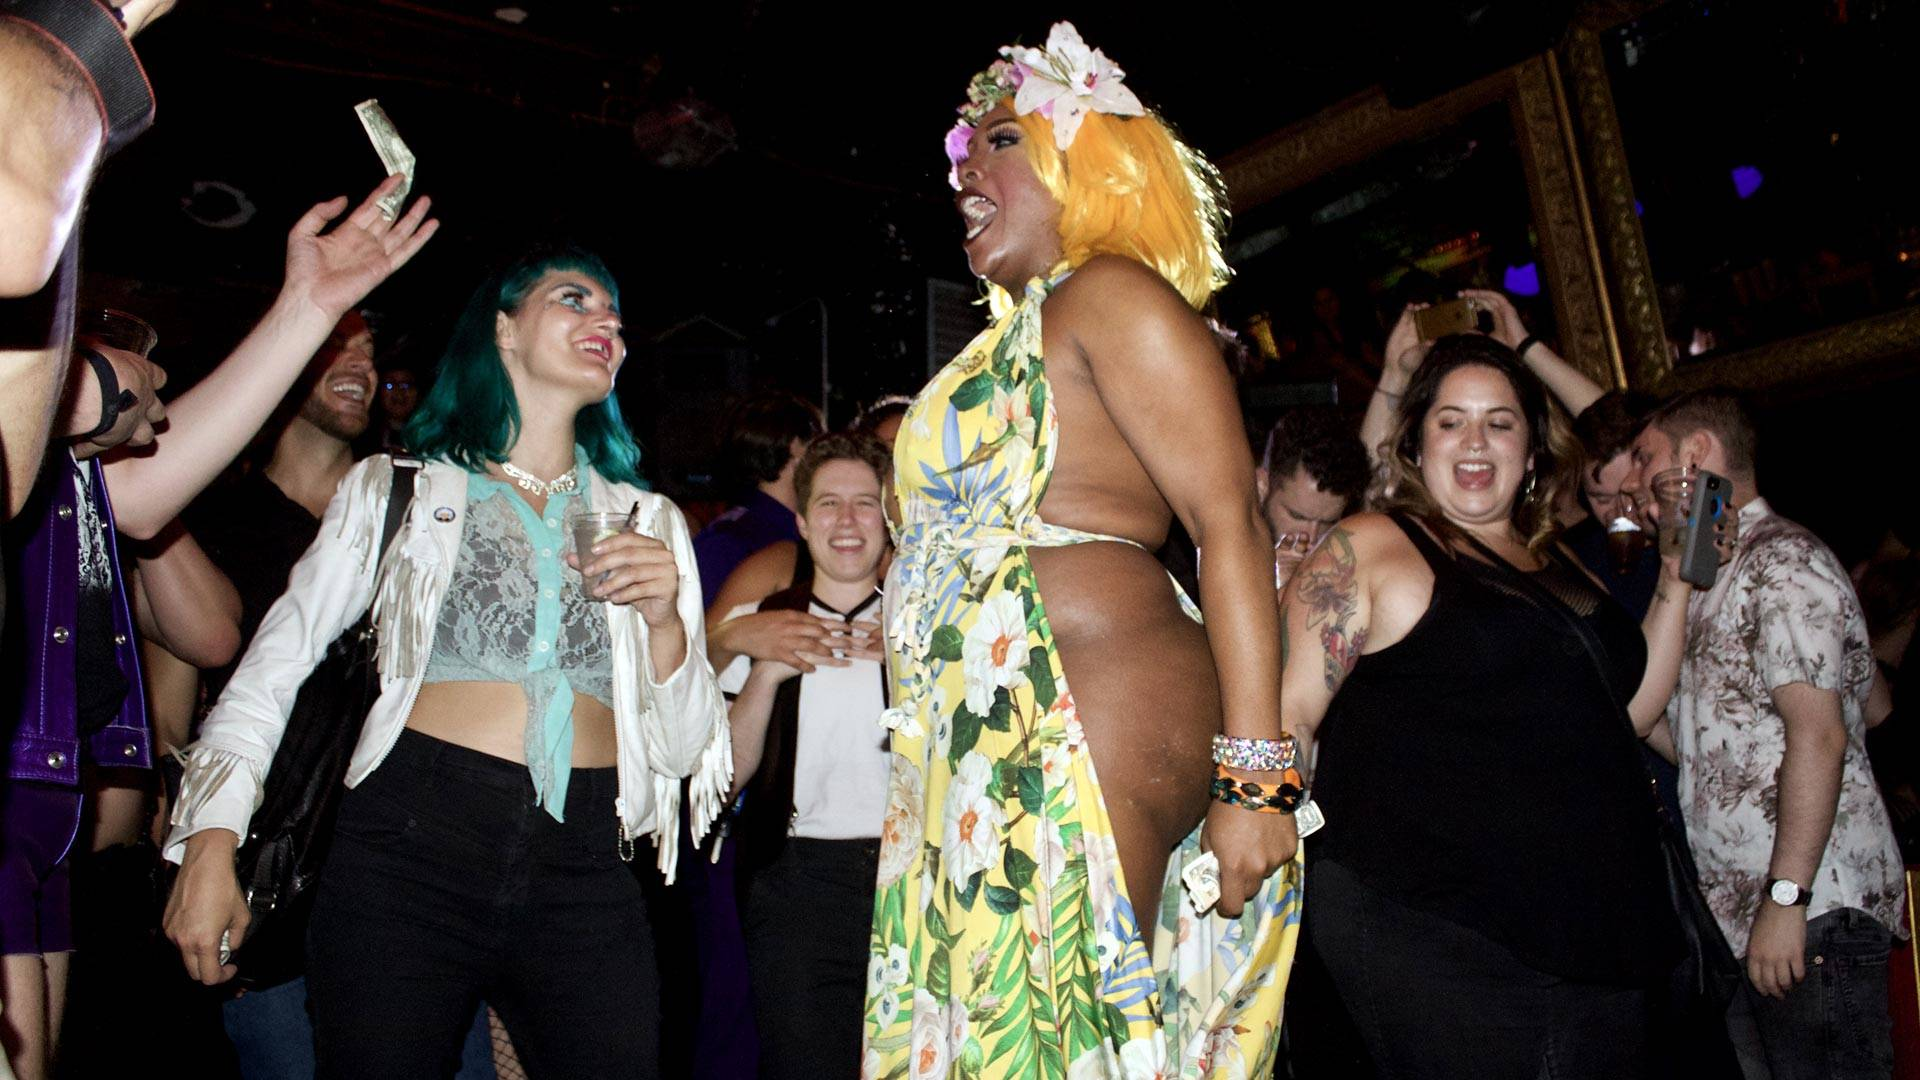 Bionka Simone walks into the crowd while performing a lip-sync to 'What's Up' by the 4 Non Blondes on Sept. 22.  Audrey Garces/KQED